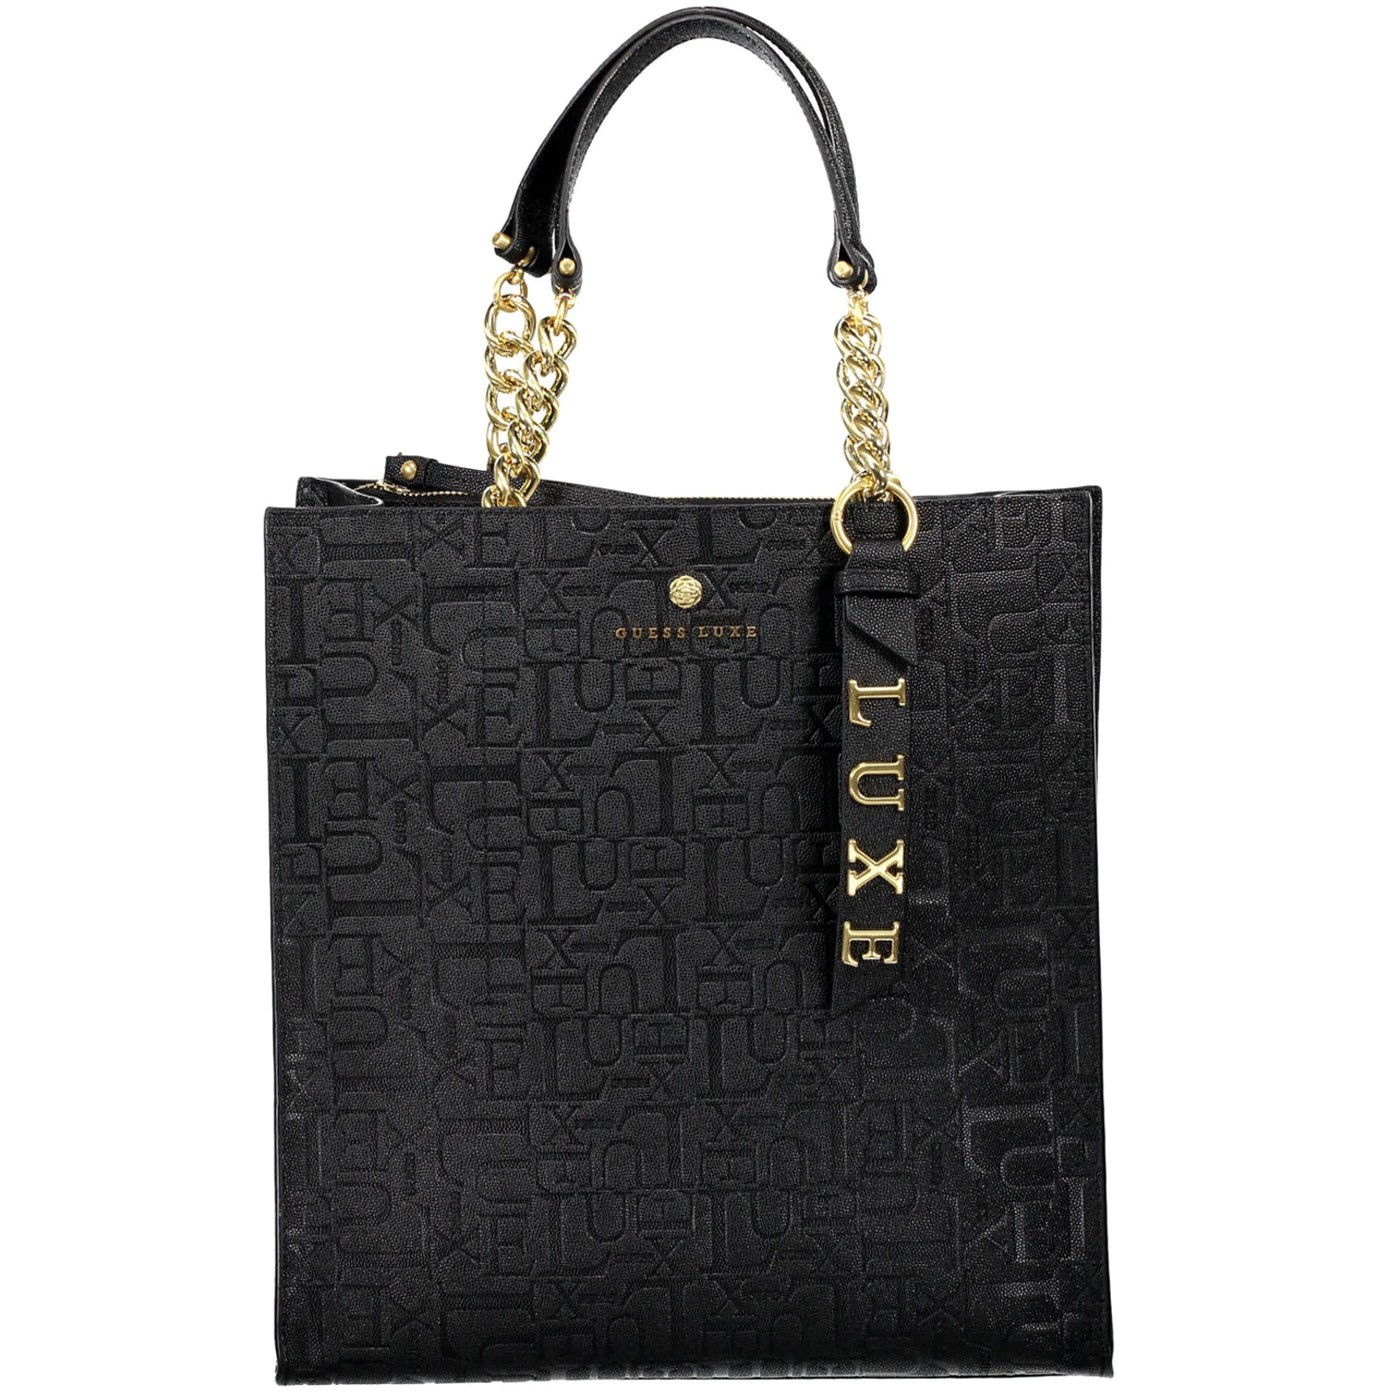 GUESS LUXE Leather big bag with two handles